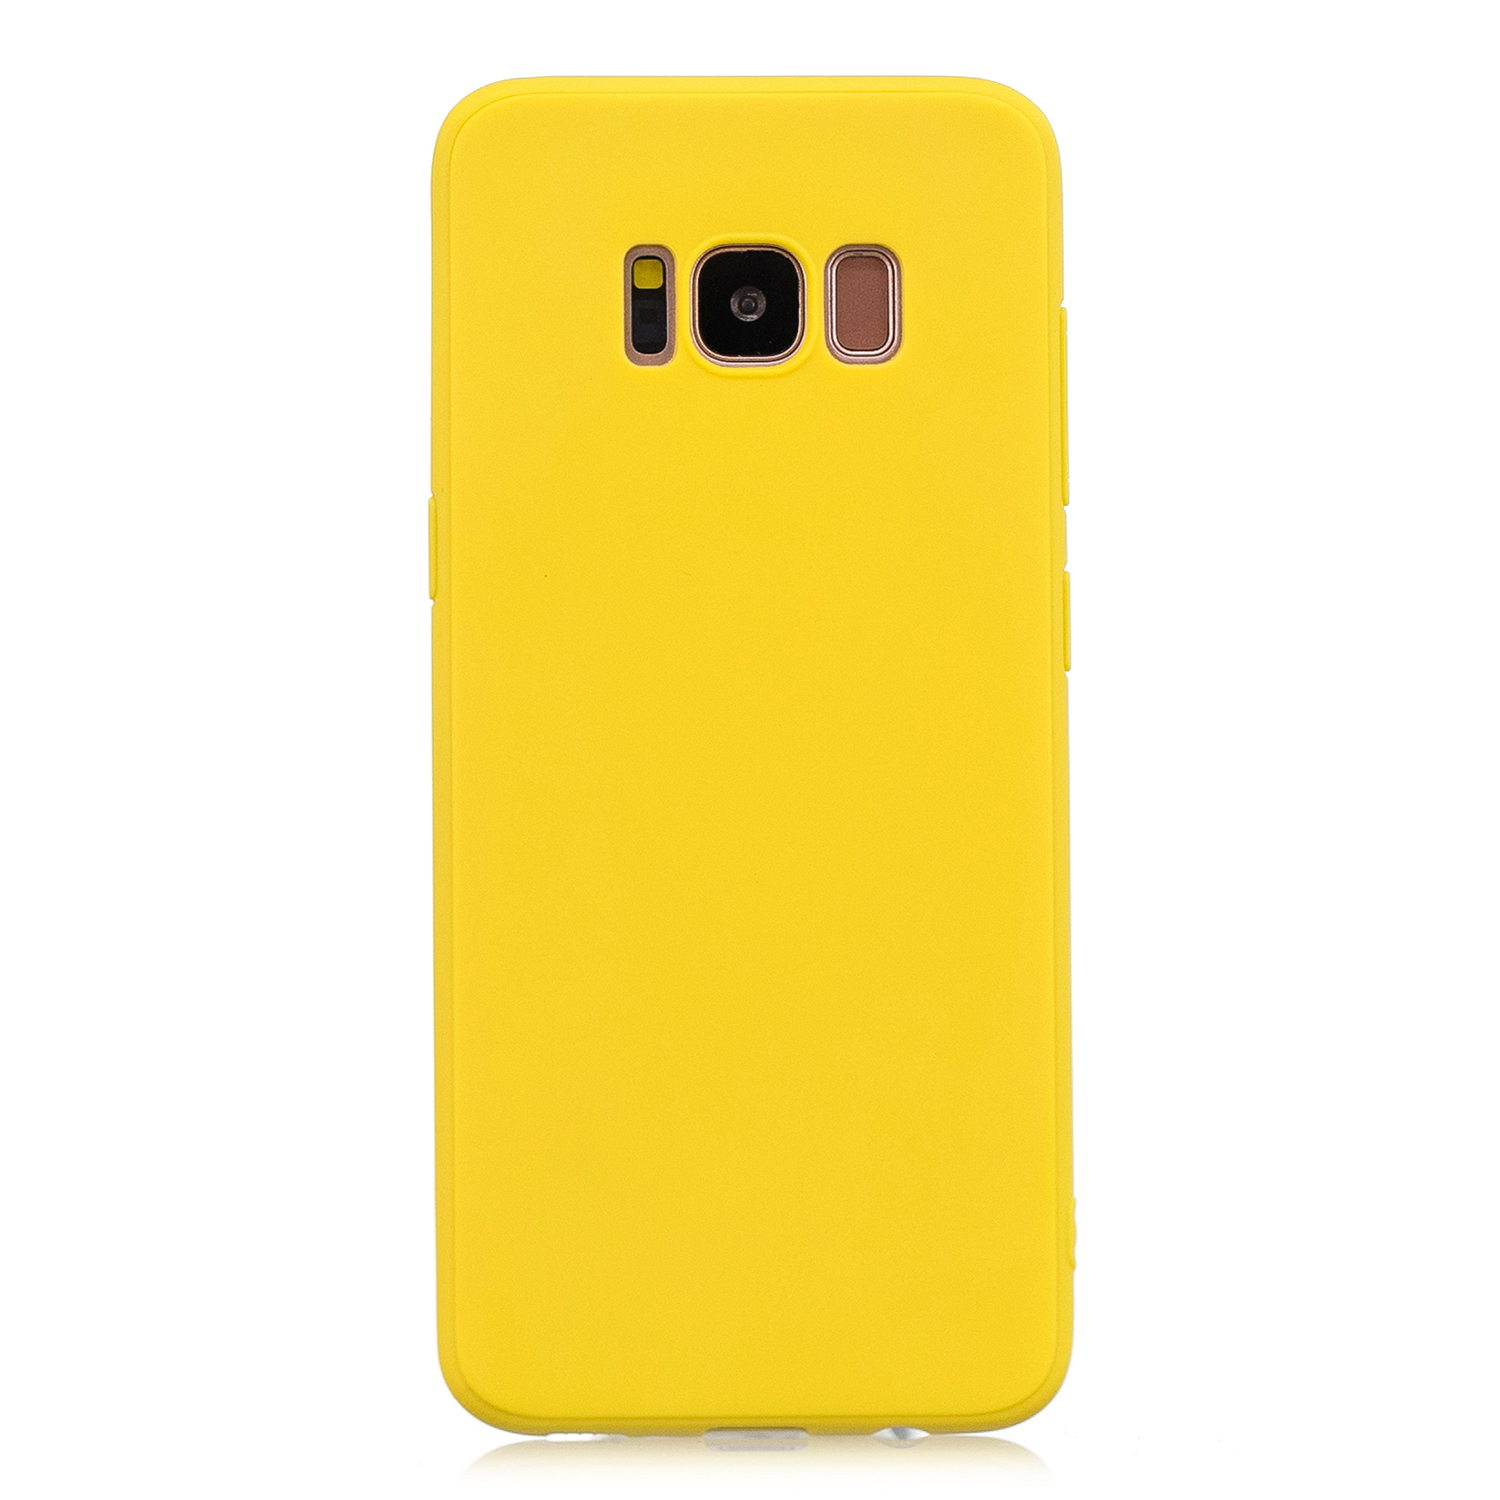 for Samsung S8 plus Lovely Candy Color Matte TPU Anti-scratch Non-slip Protective Cover Back Case yellow